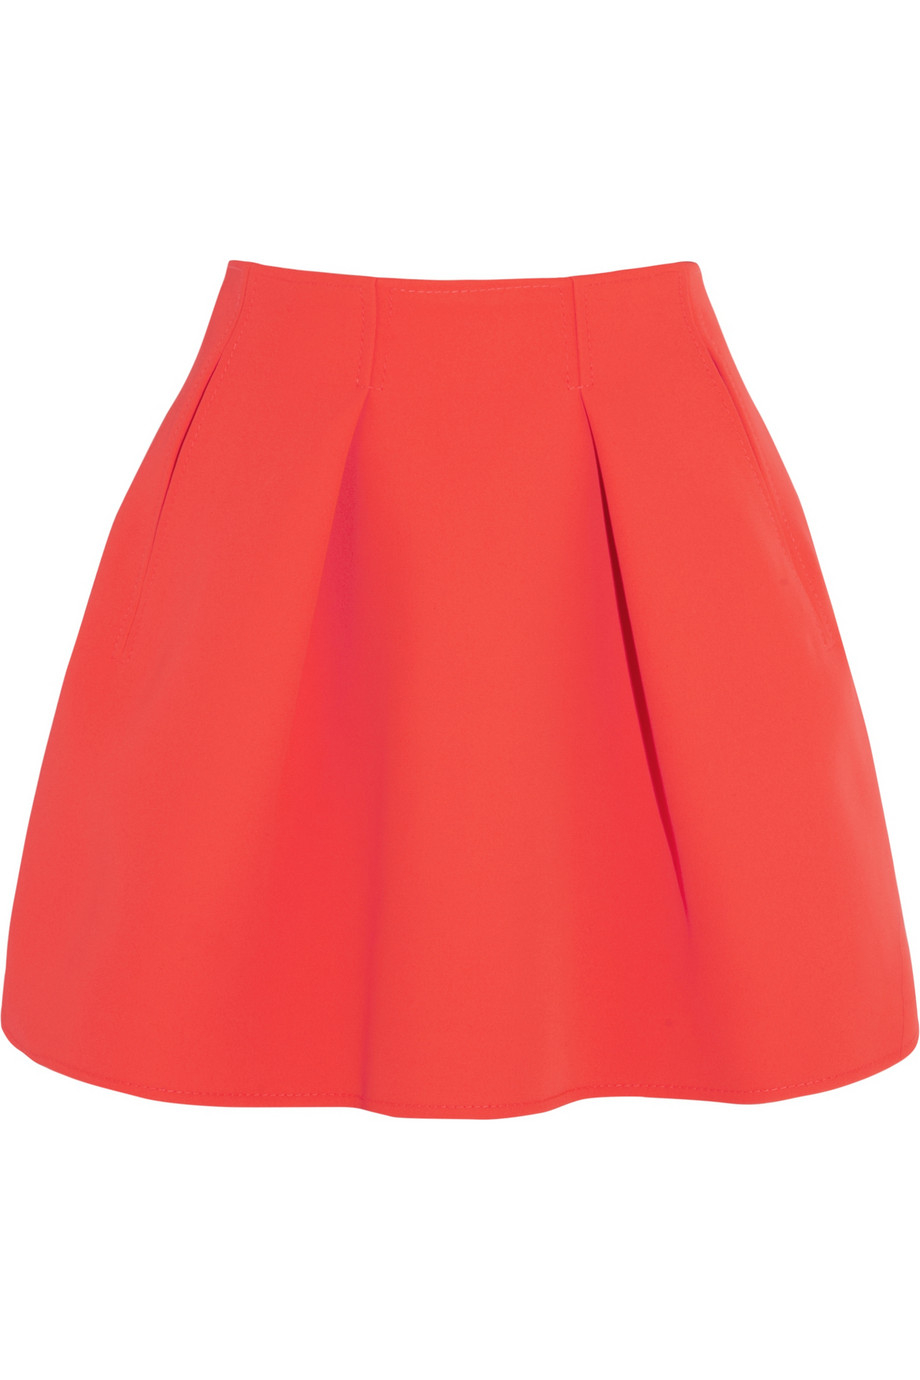 kenzo pleated neon neoprene mini skirt in orange lyst